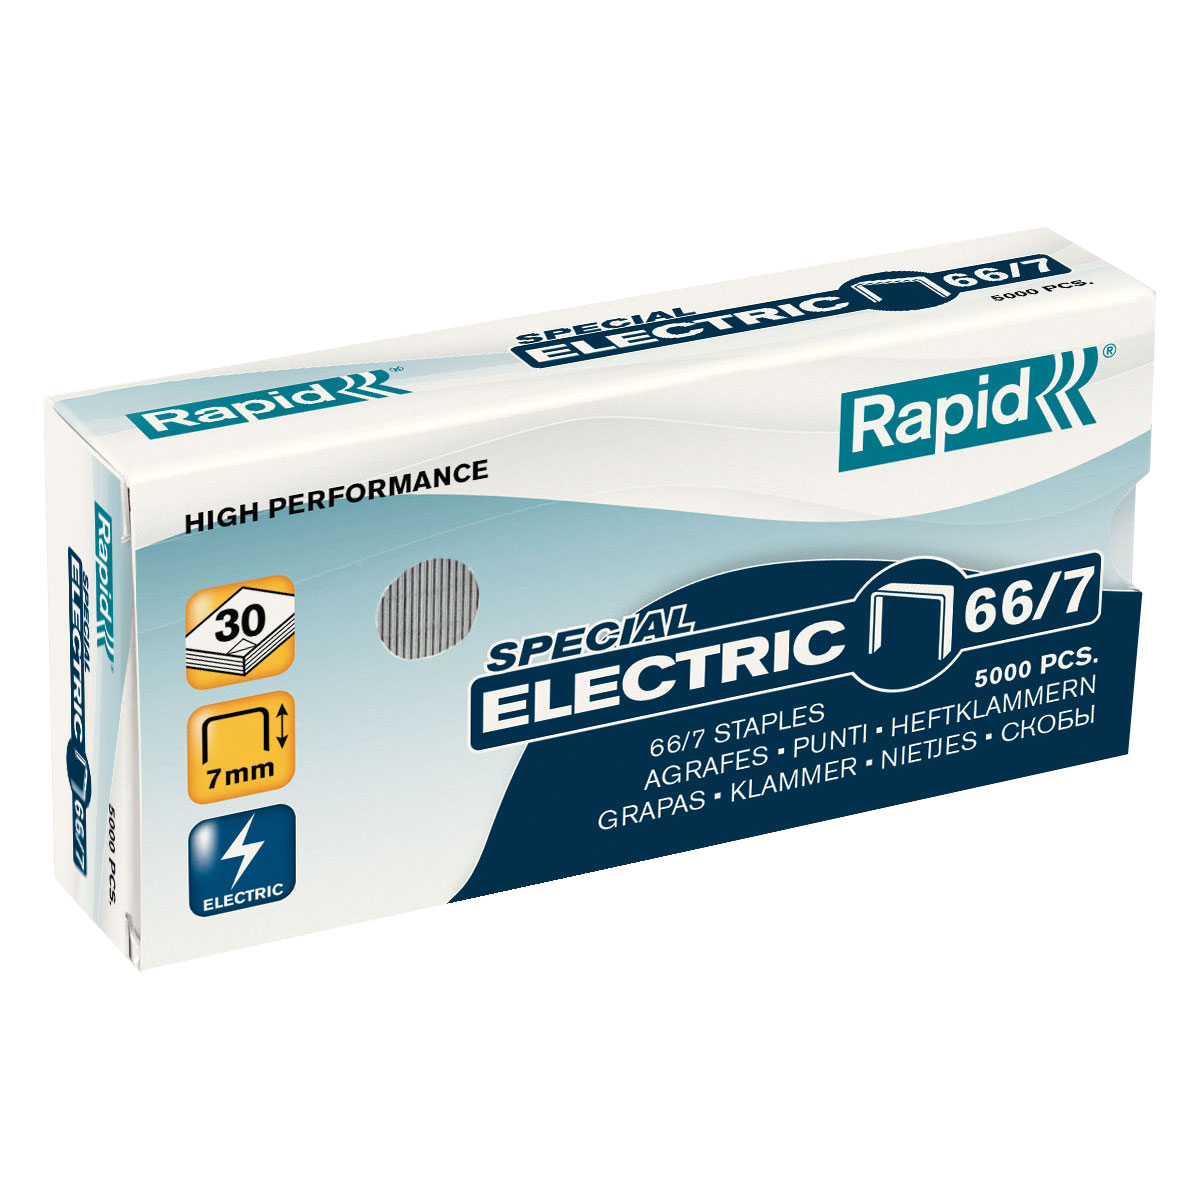 Trade Box Rapid 66/7 Staples (12 Packs)